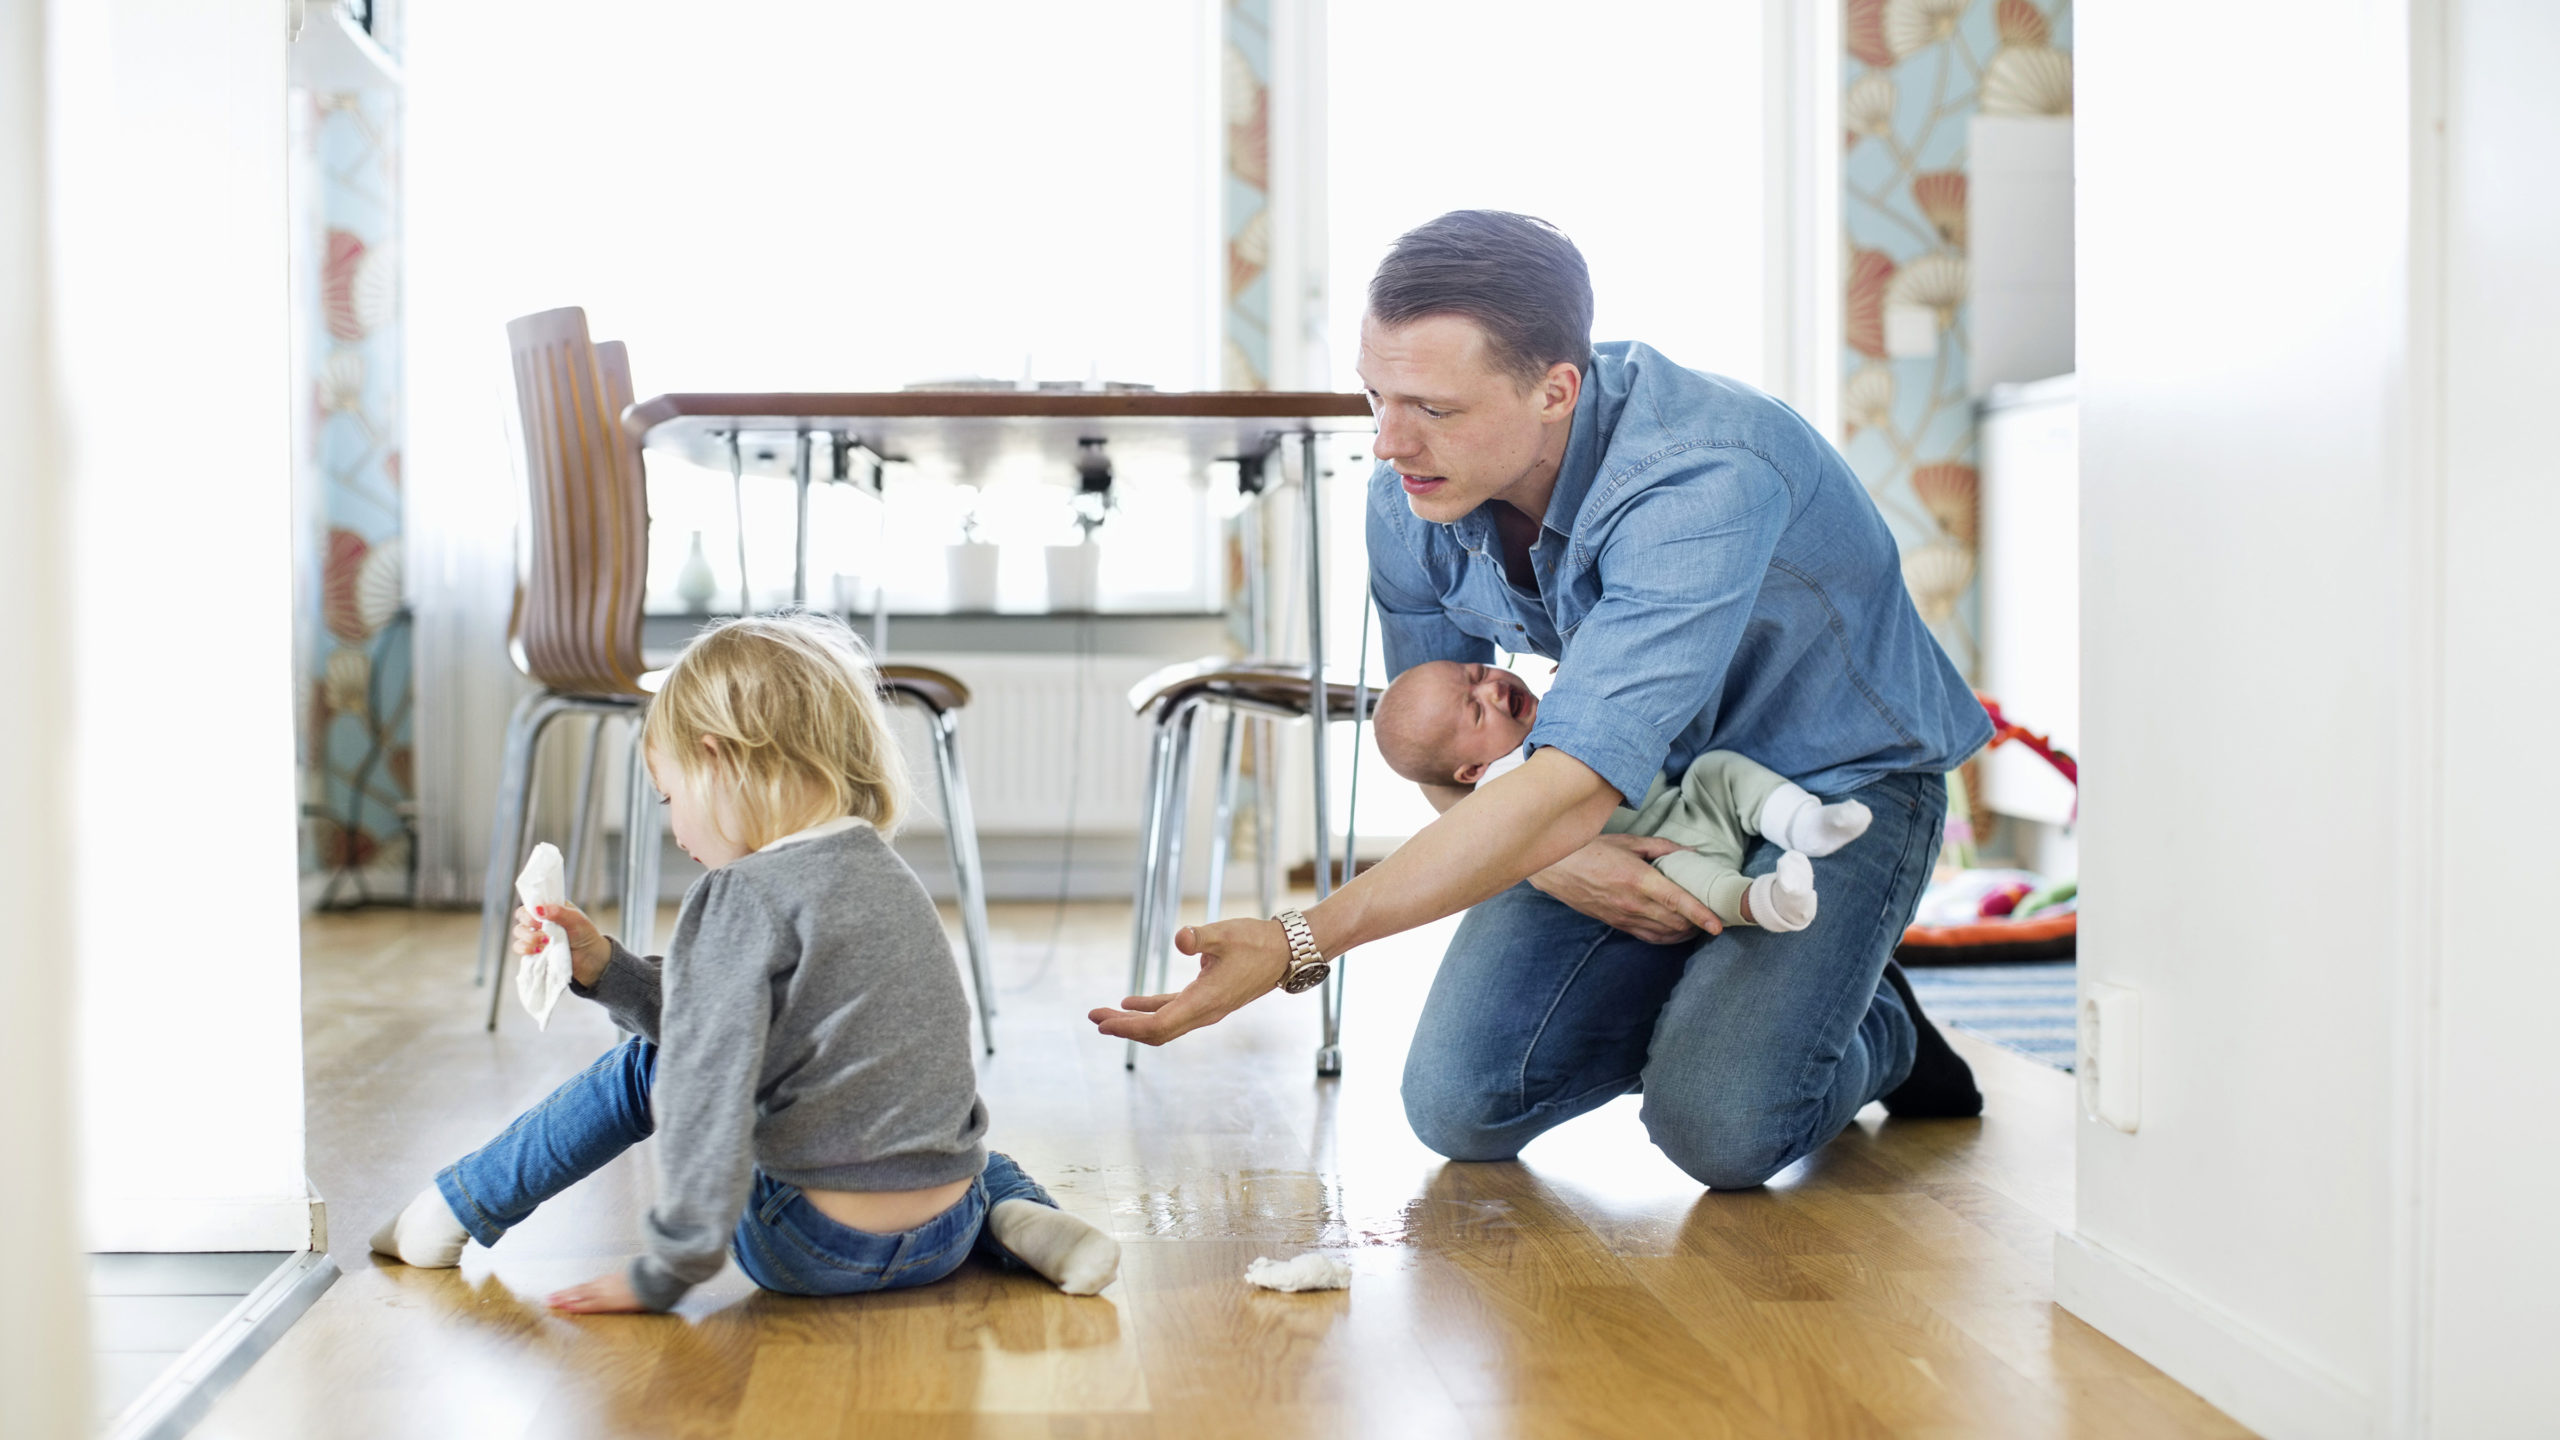 Ask The Dad: No More Kids